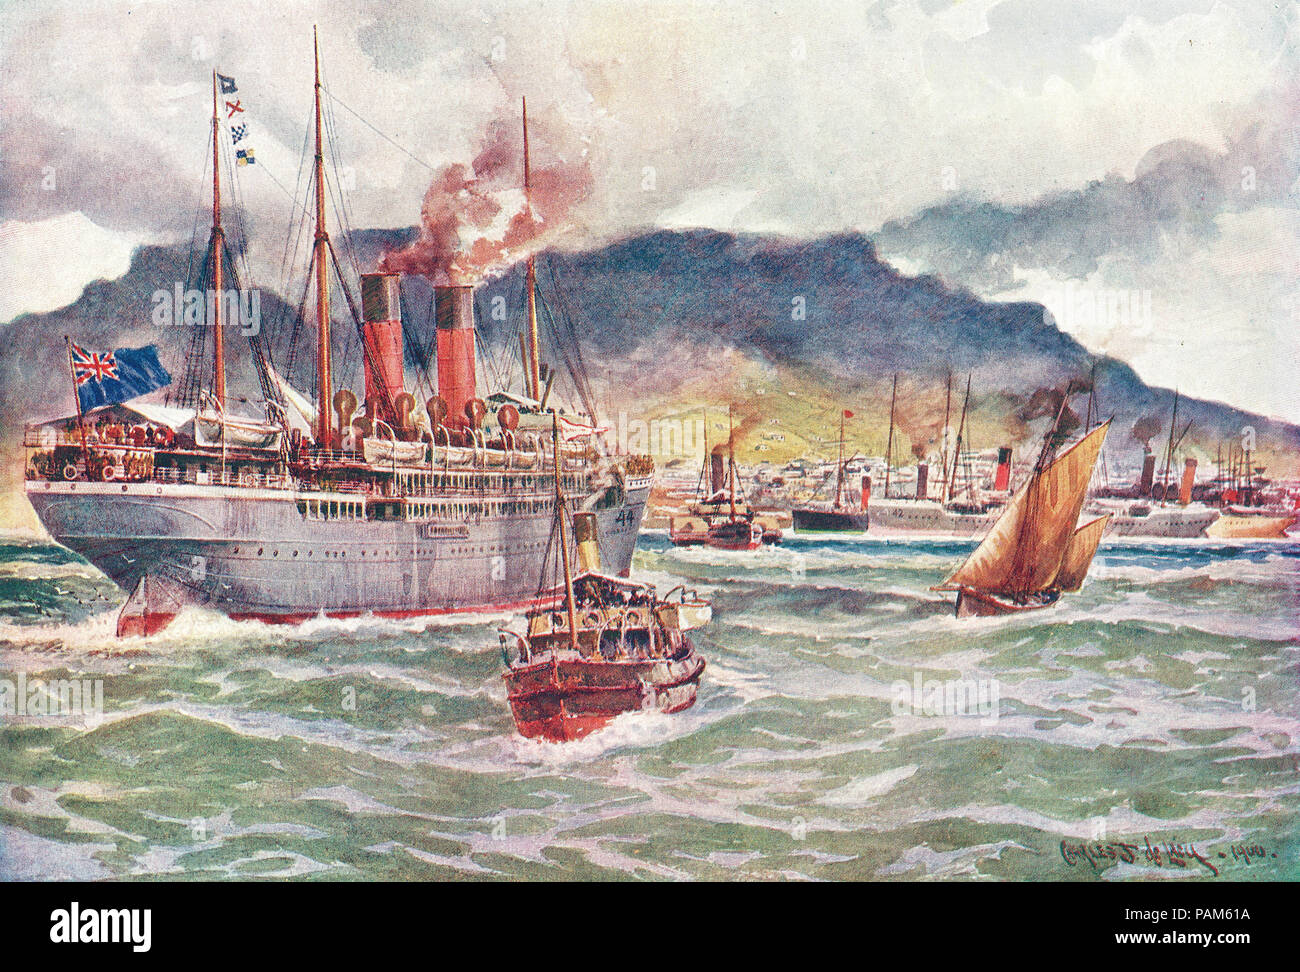 Transports in Table Bay, Cape Town, South Africa, during the South African War, AKA Second Anglo-Boer War, Second Boer War - Stock Image